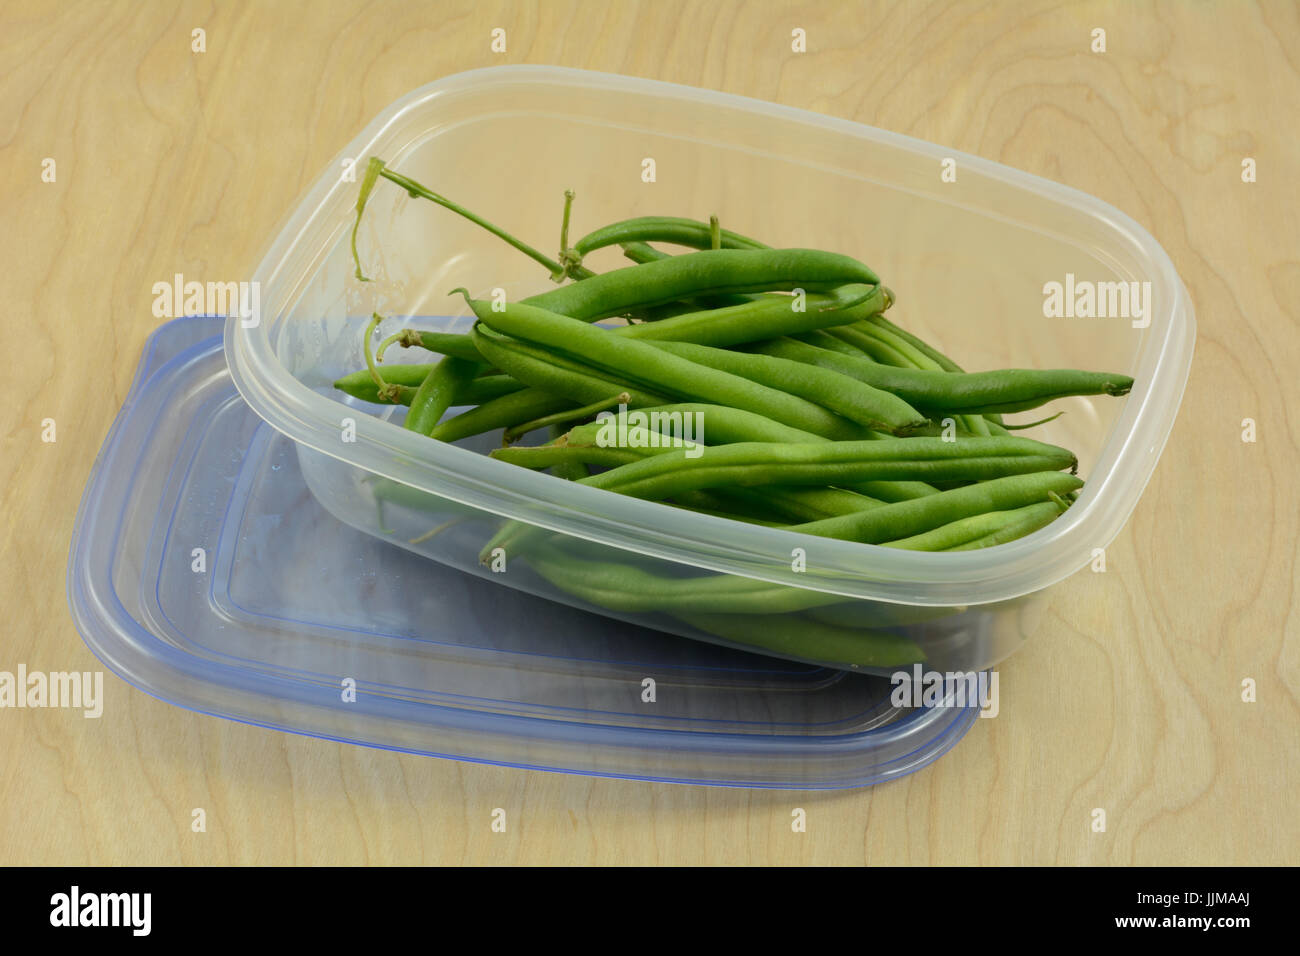 Raw green string beans in plastic refrigerator storage container